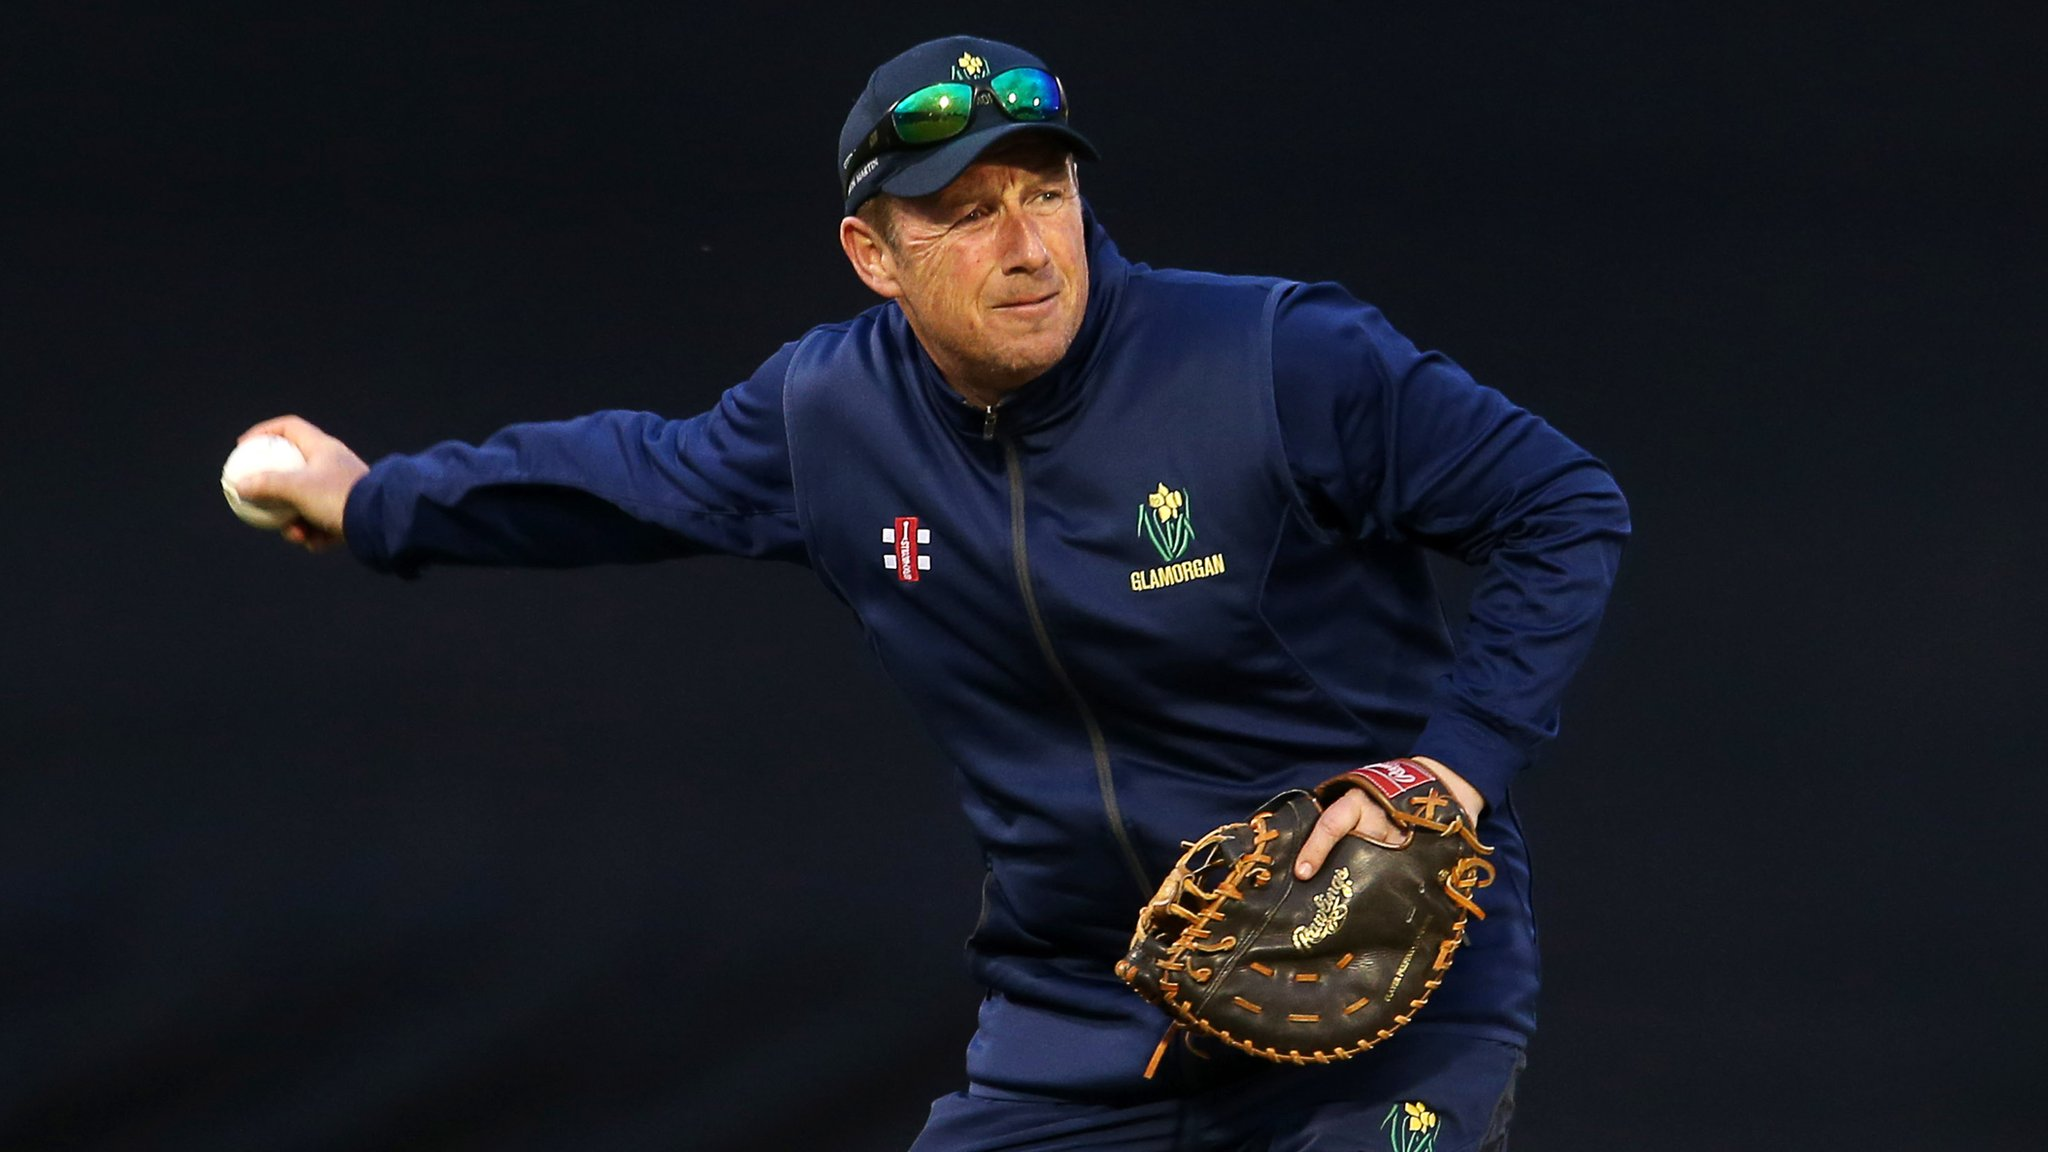 Robert Croft leaves Glamorgan head coach role